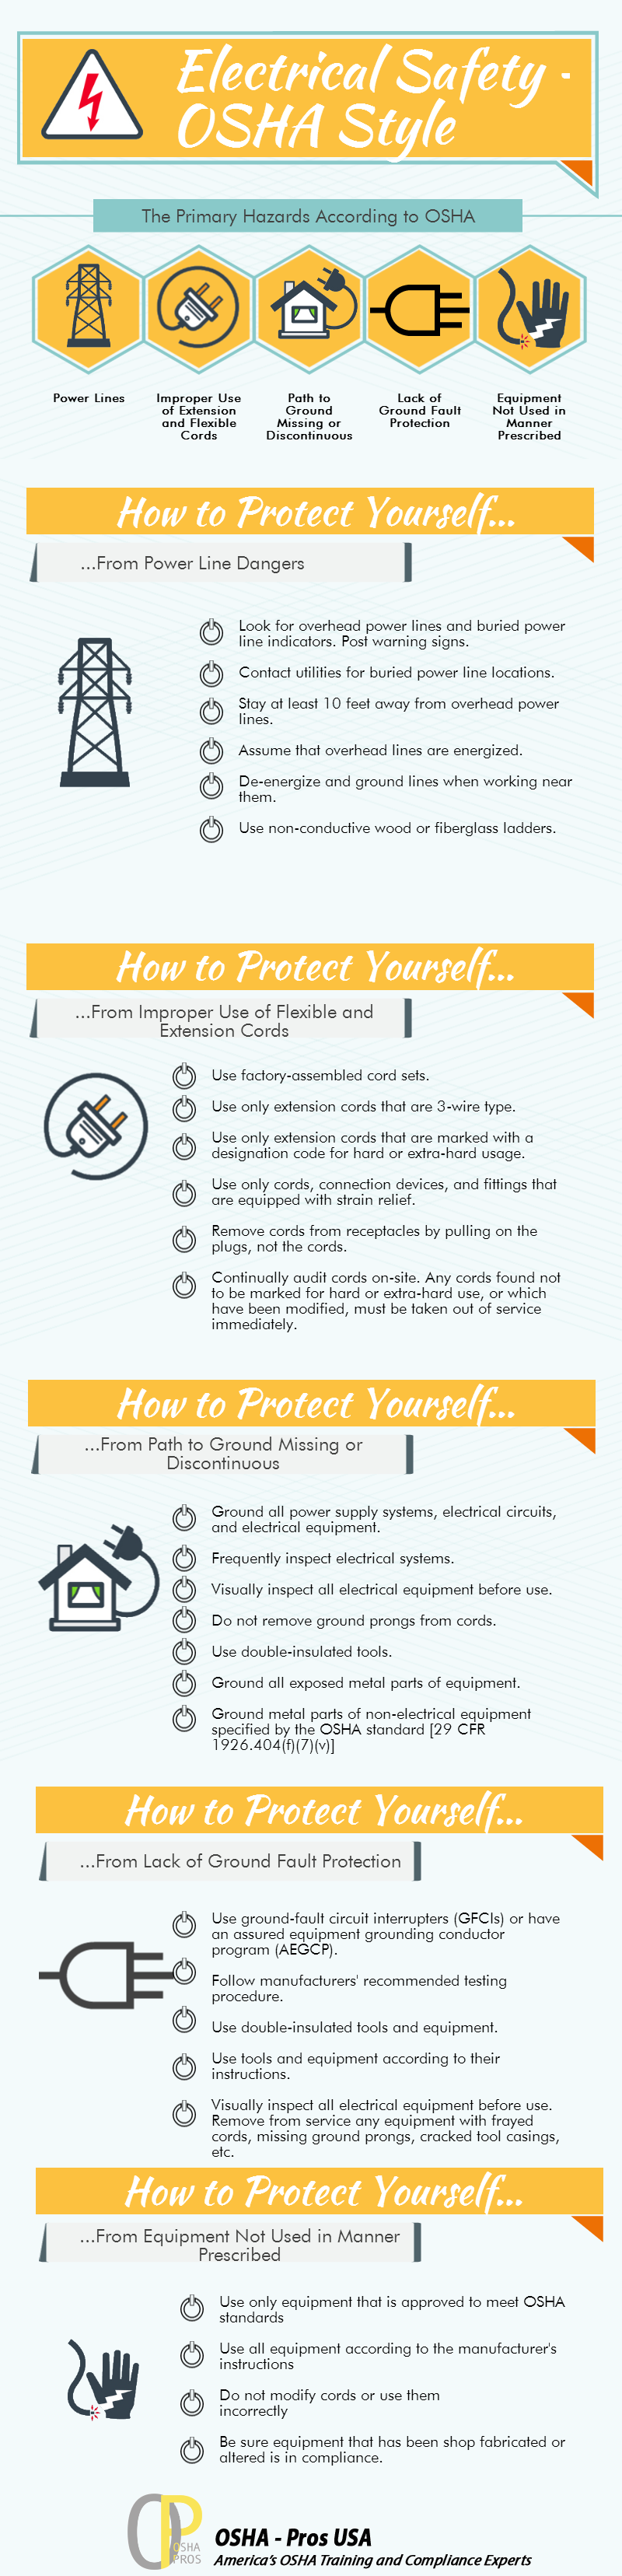 Electrical safety infographic identifying hazards and their preventions.